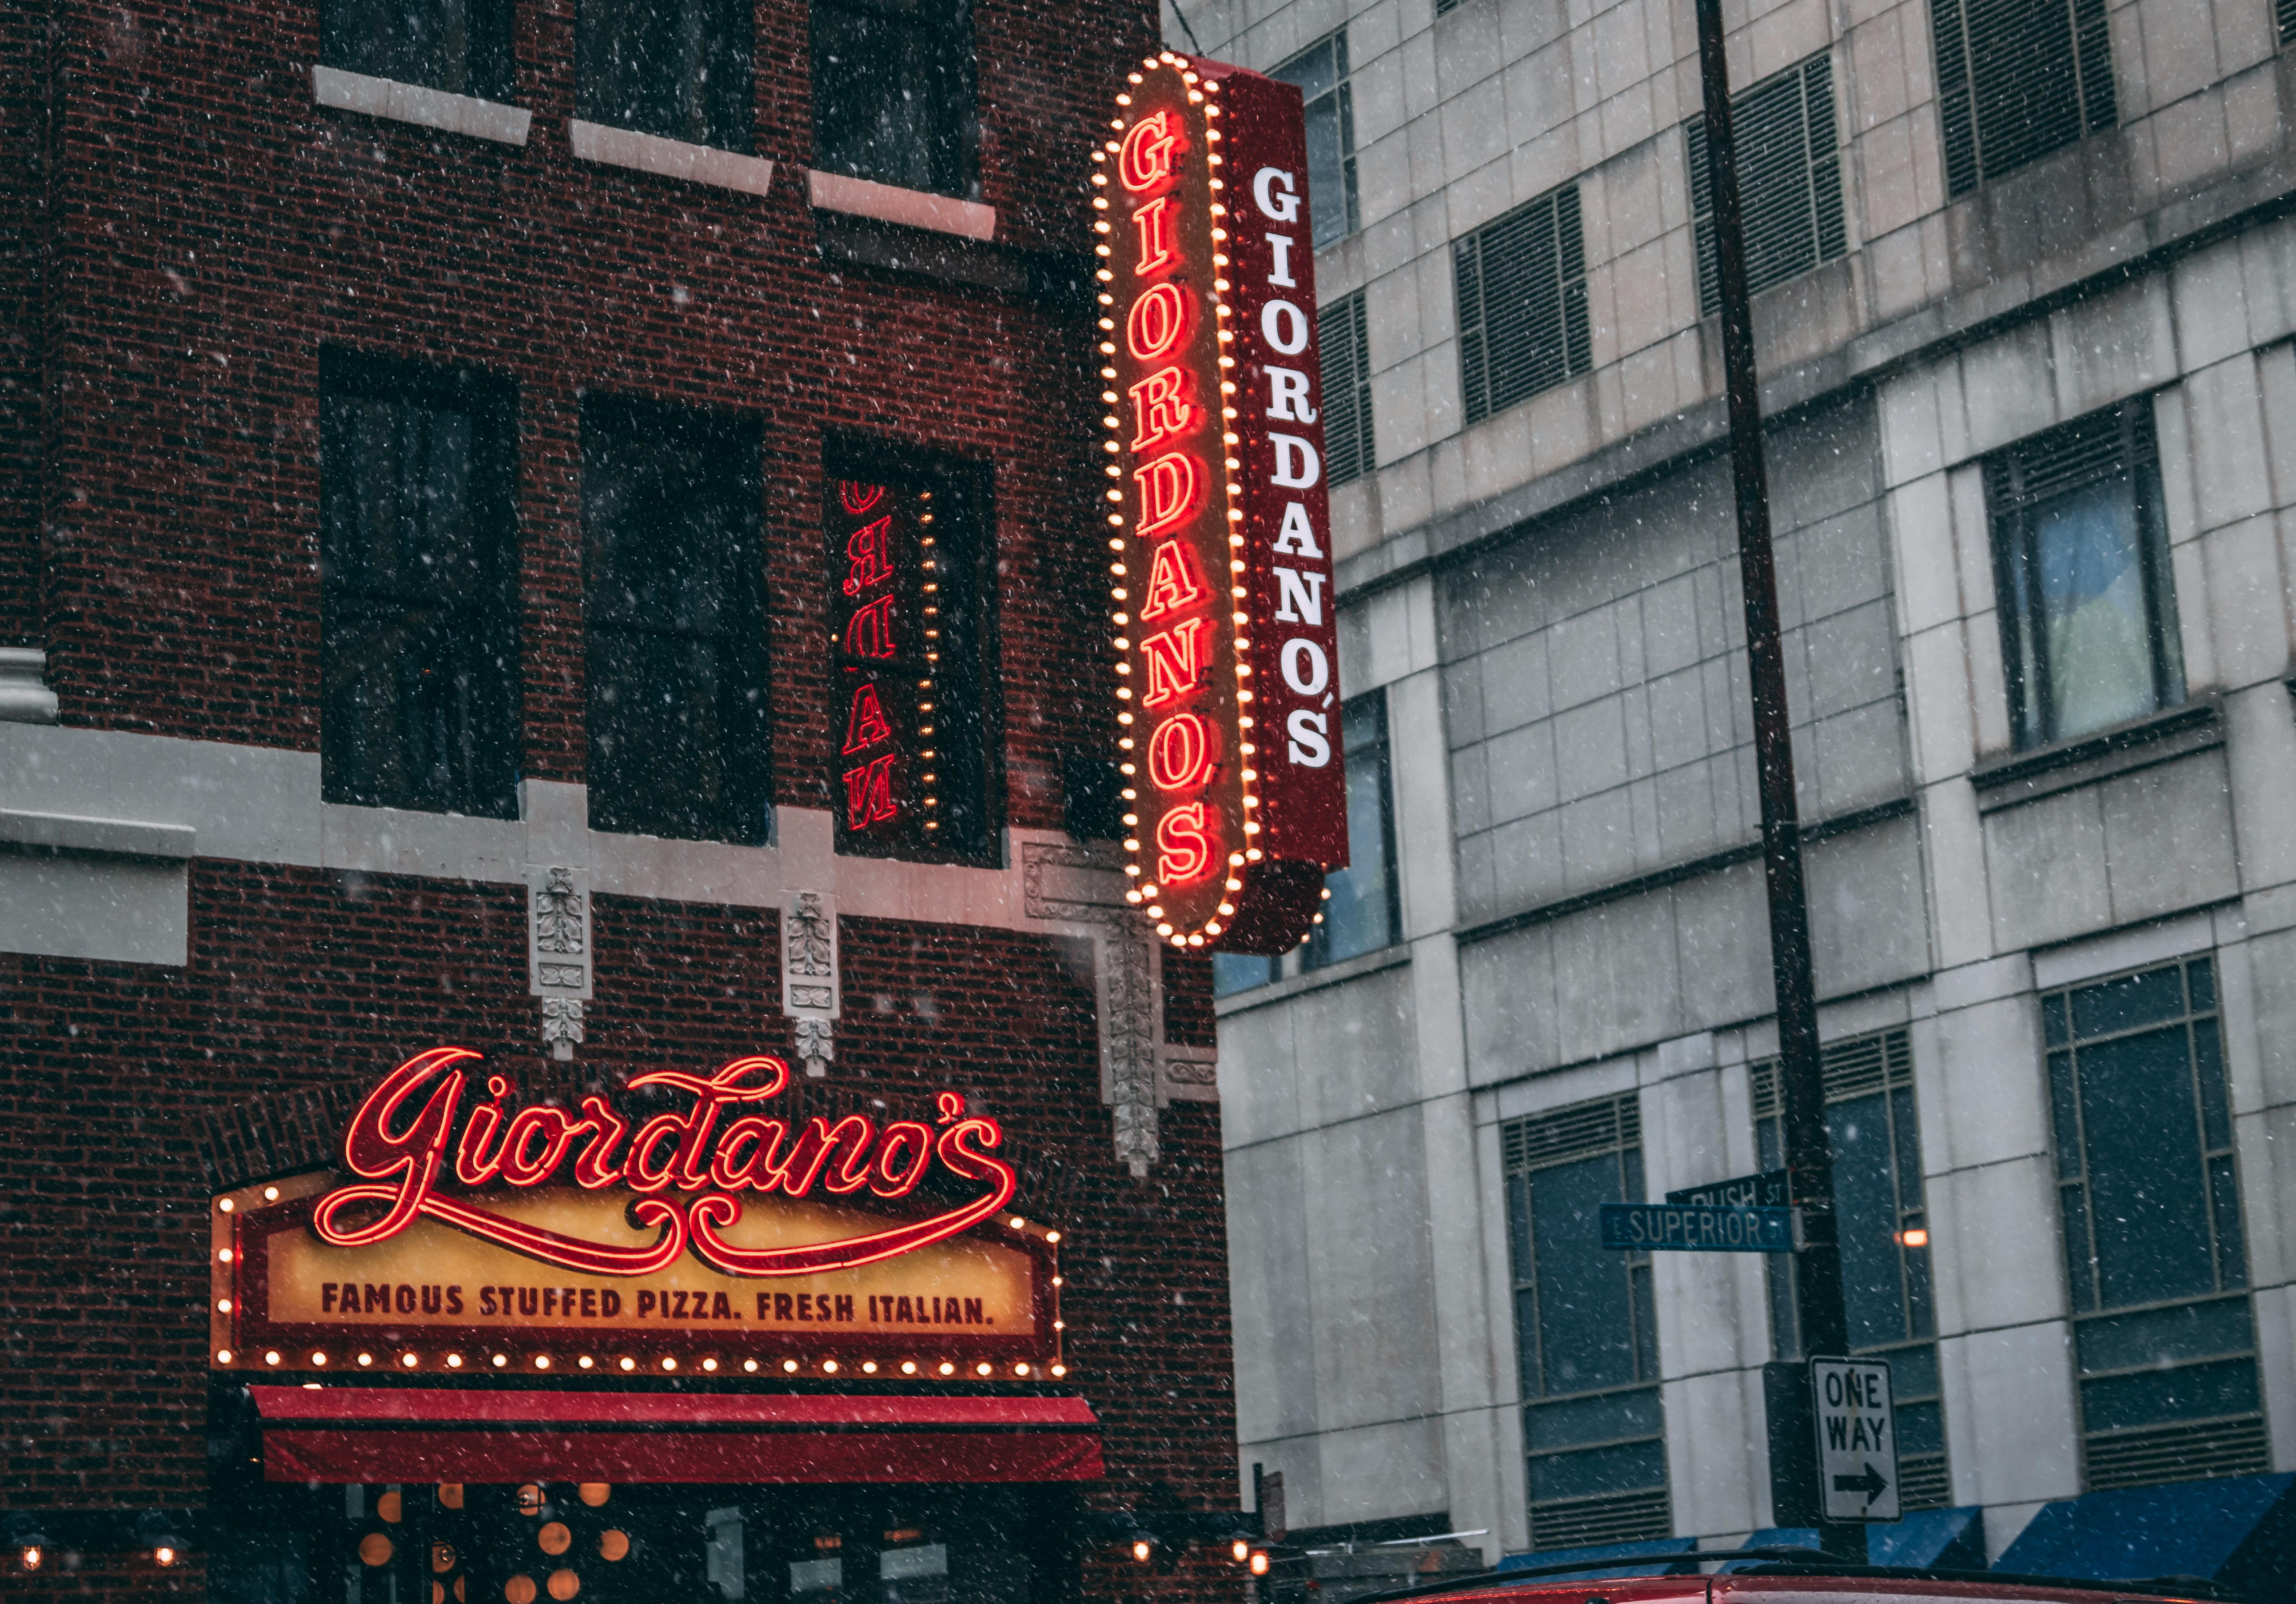 Giordano's store front